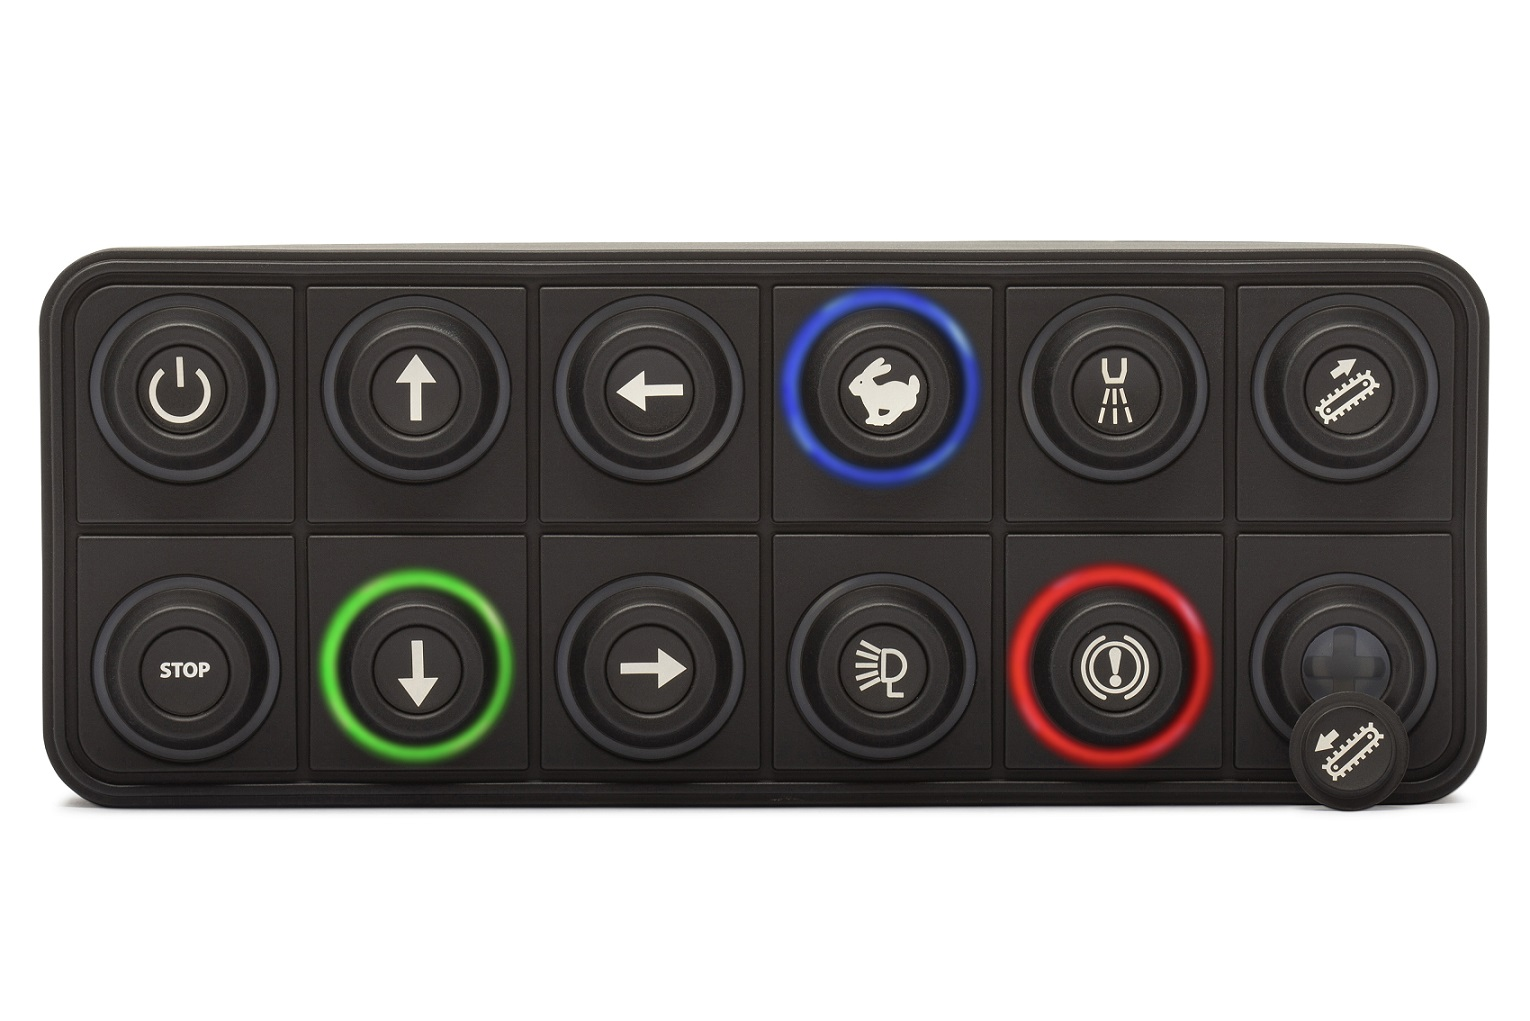 12 button CANBUS keypad